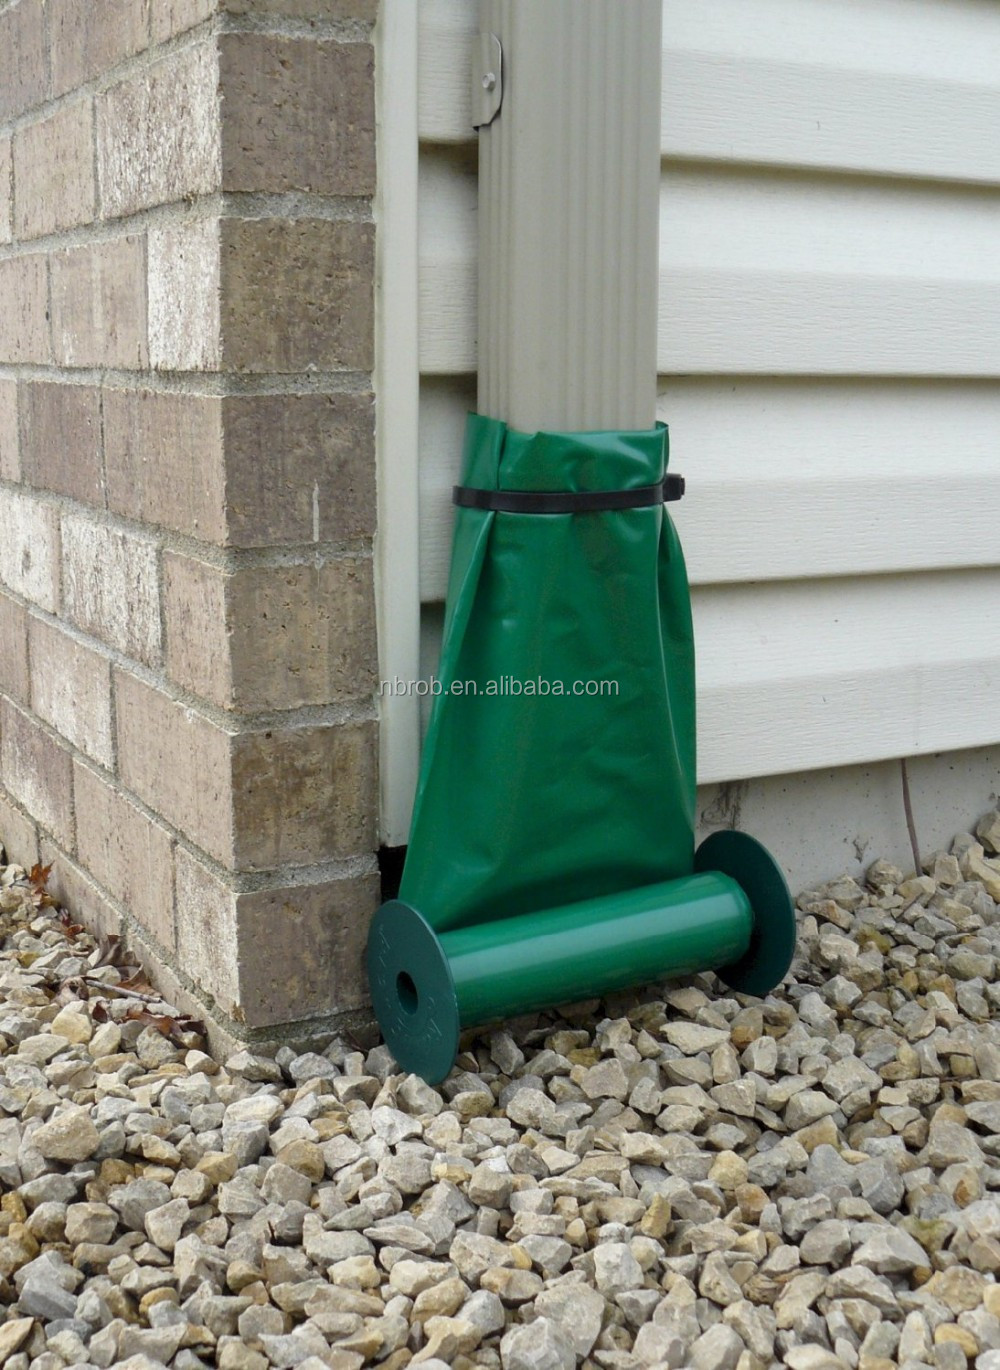 Pvc Garden Tool Of Automatic Downspout Extension 9 Feet